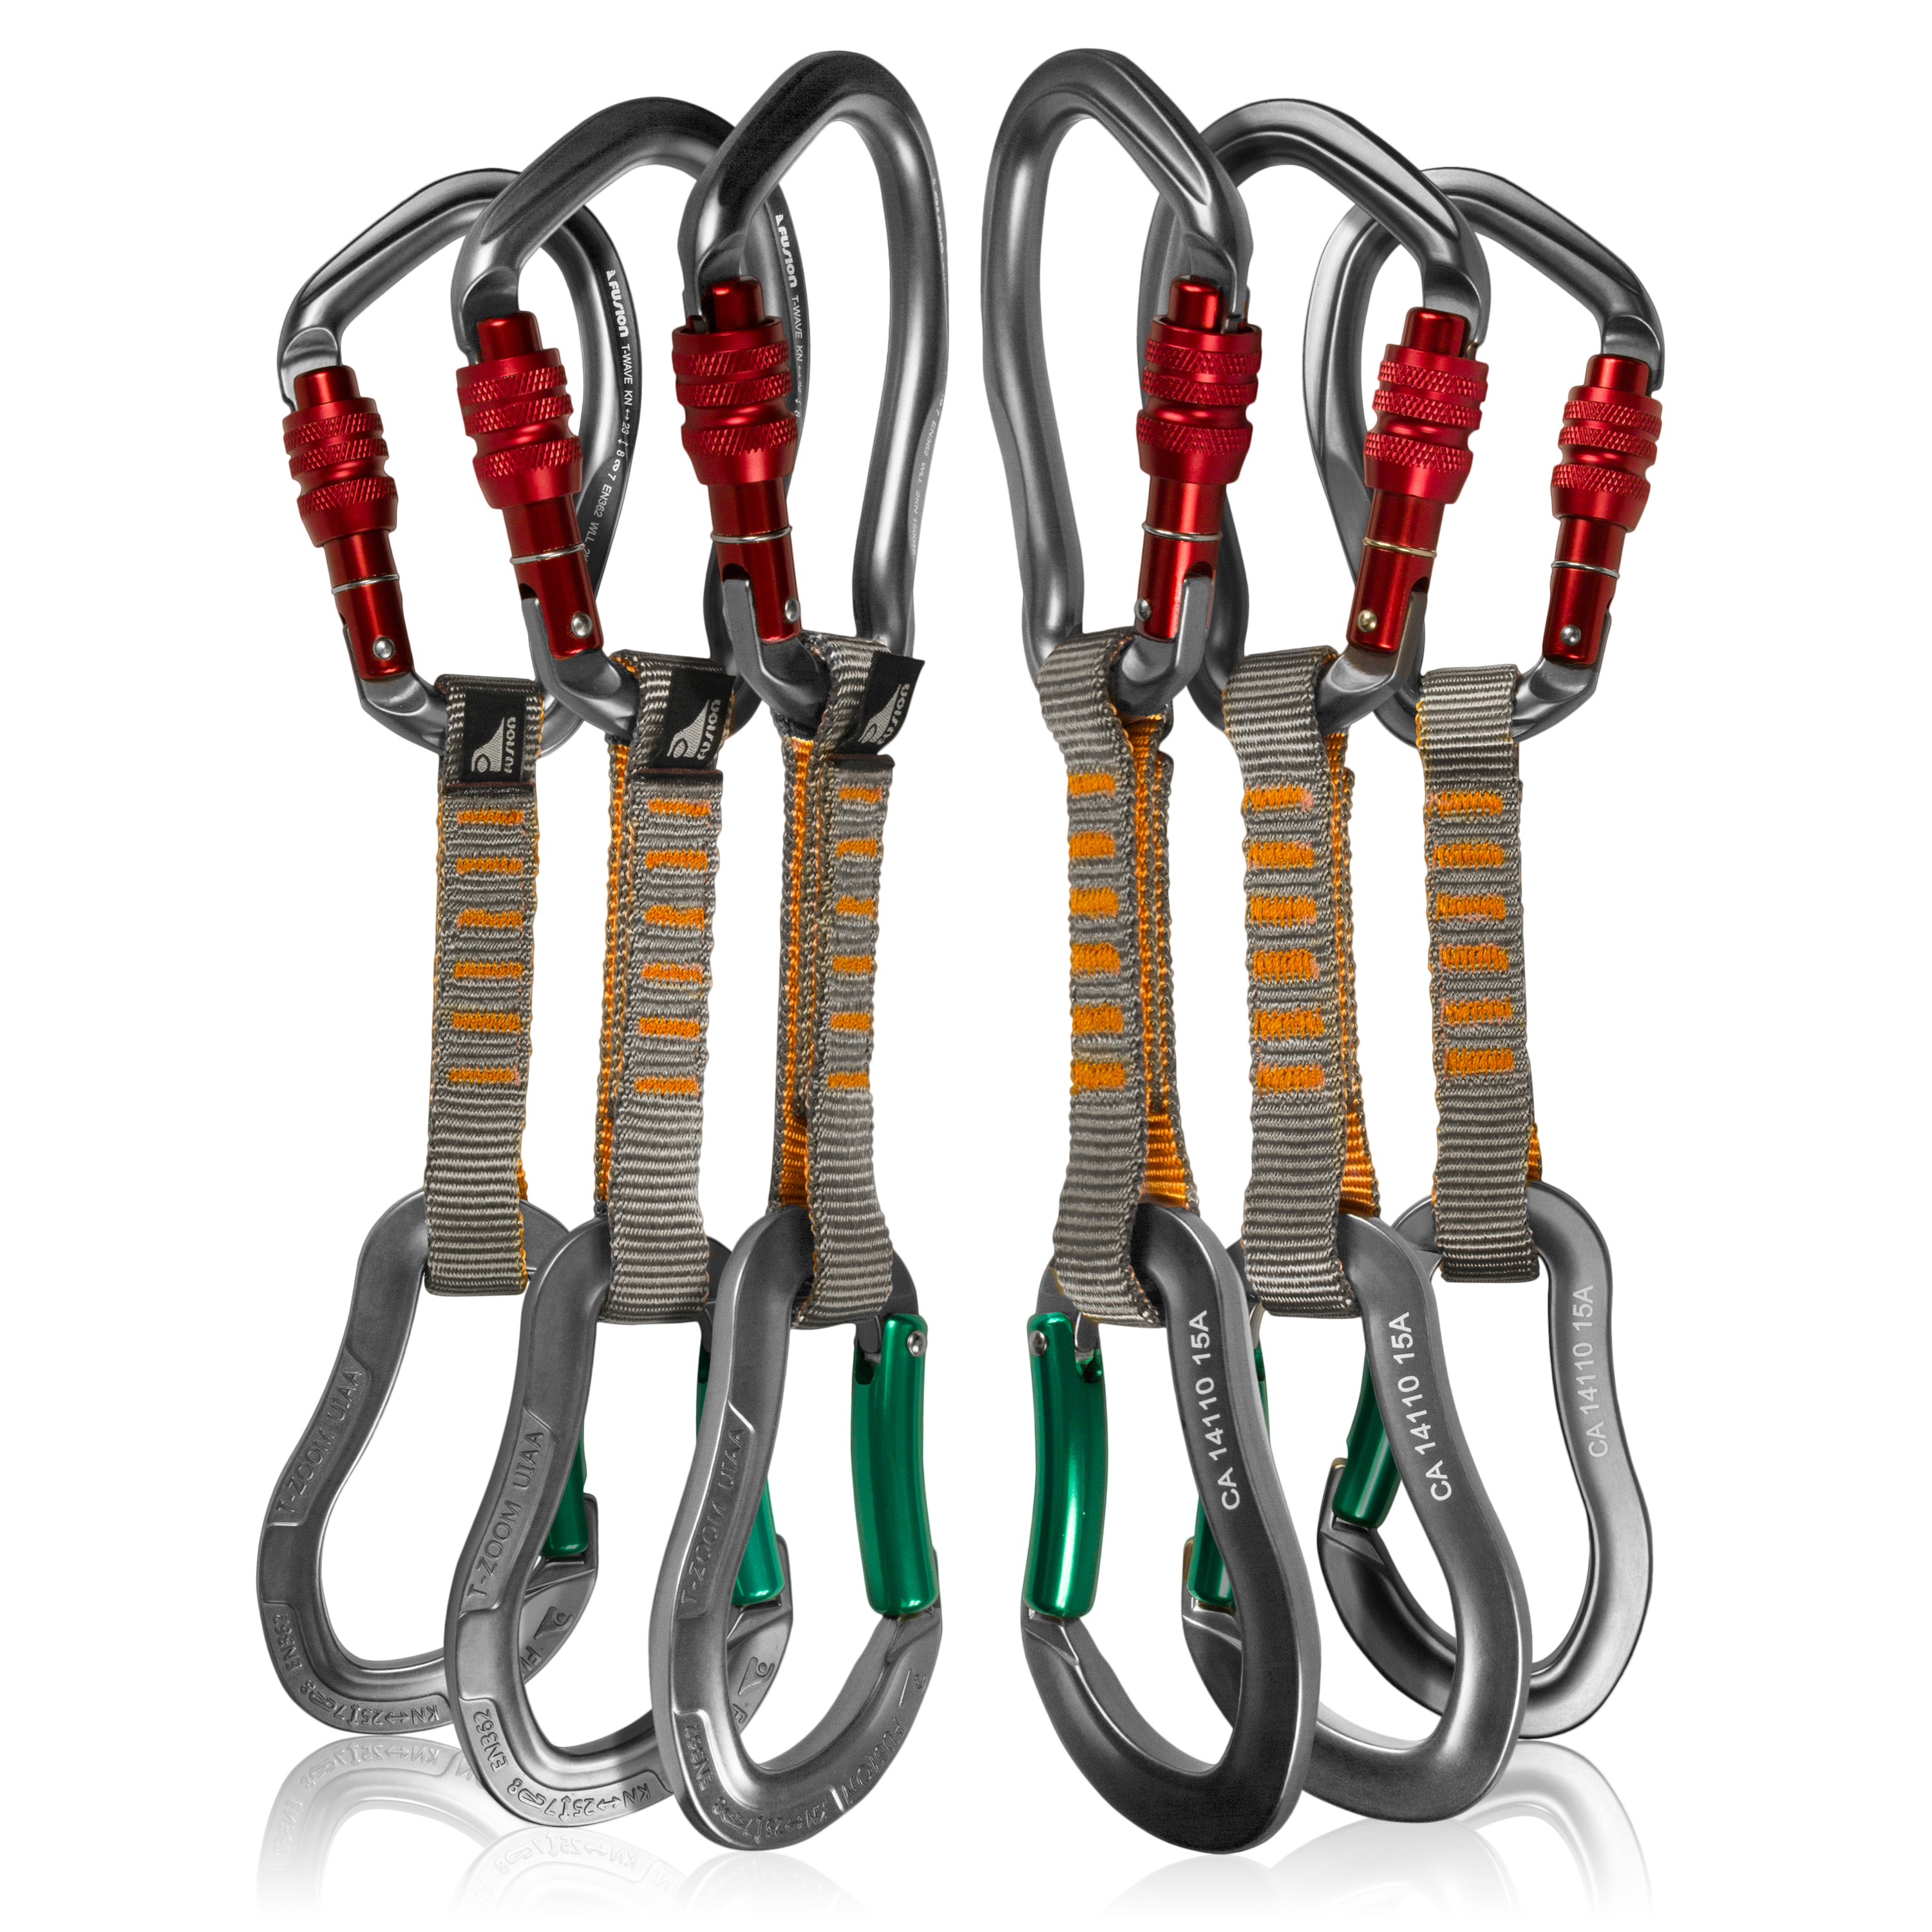 Fusion Climb 6-Pack 11cm Quickdraw Set with Techno Wave Burgundy Screw Gate Carabiner/Techno Zoom Green Bent Gate Carabiner